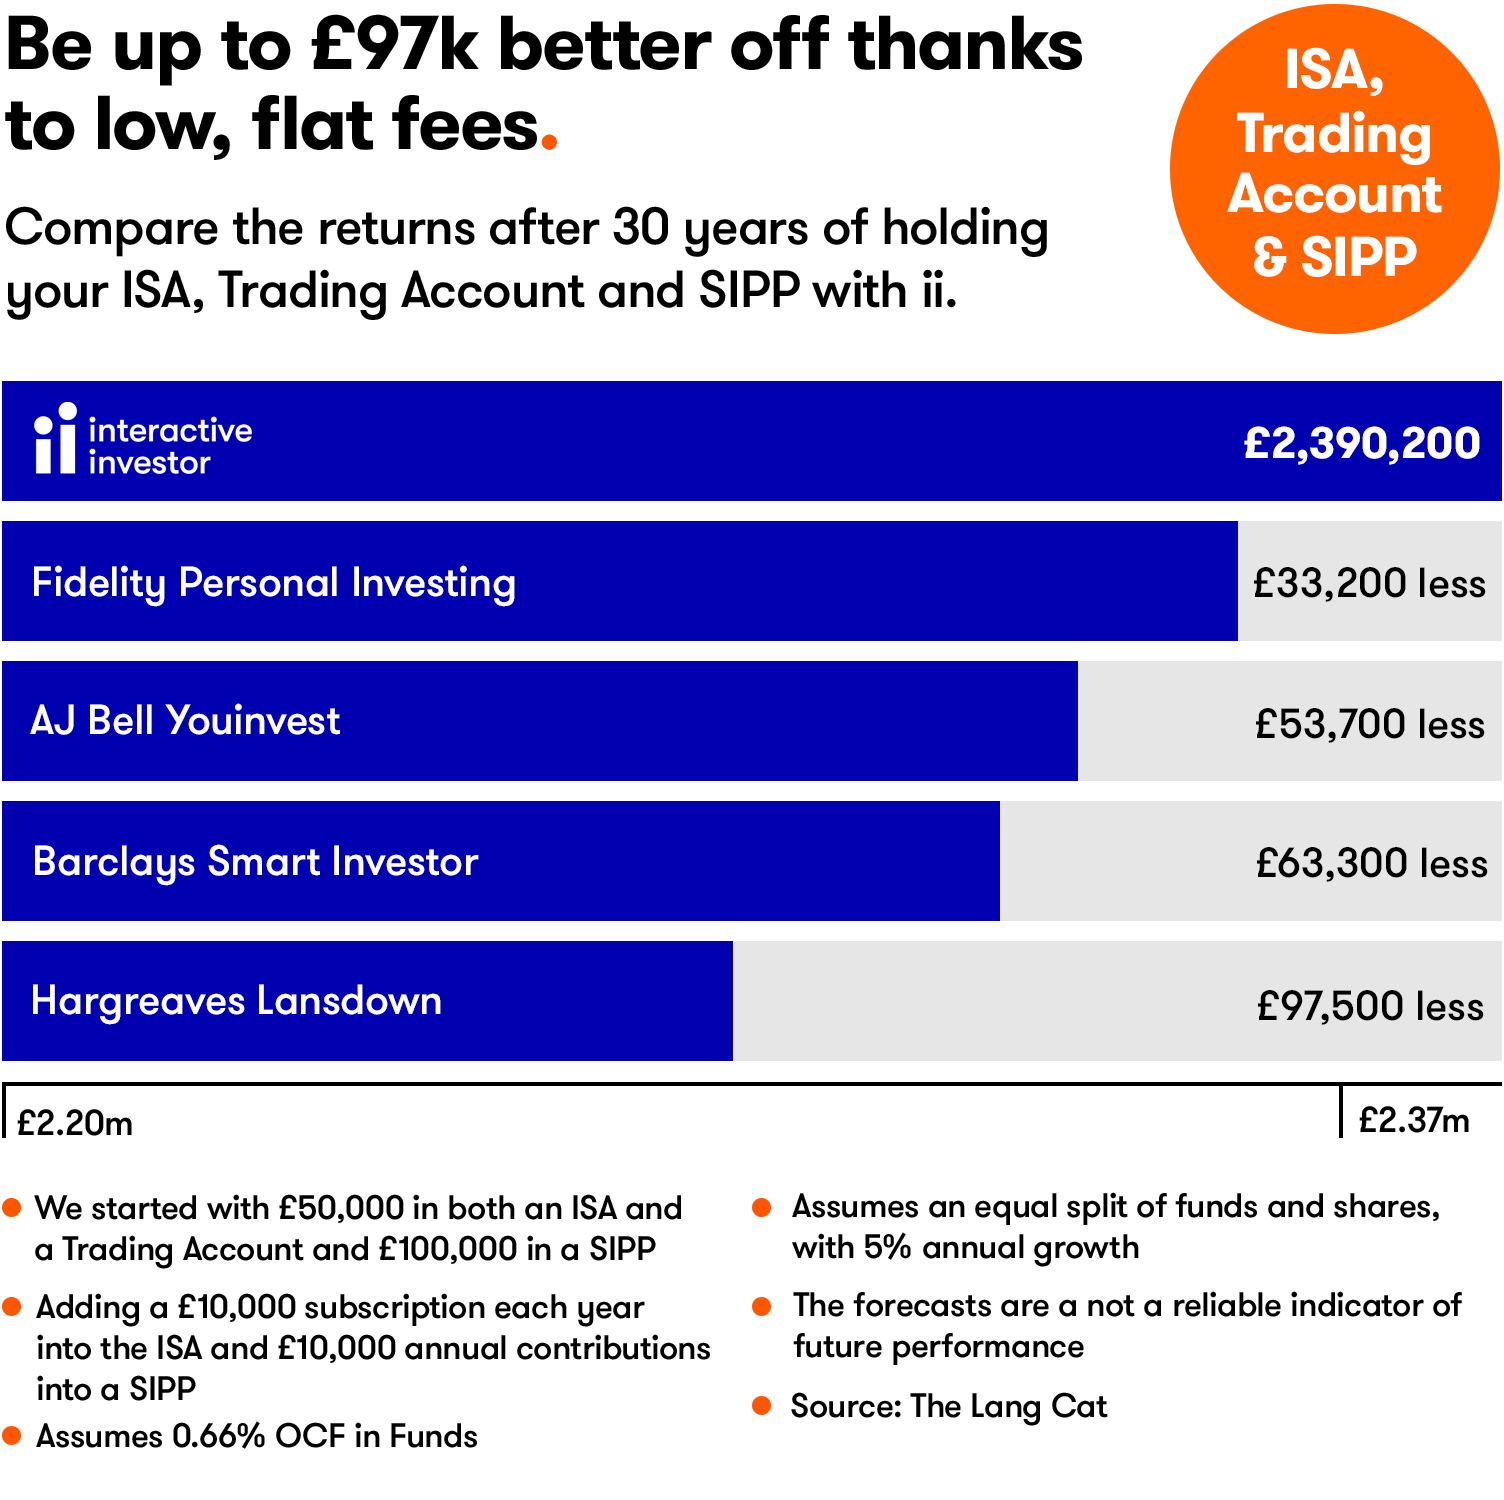 Be up to £97k better off thanks to low, flat fees